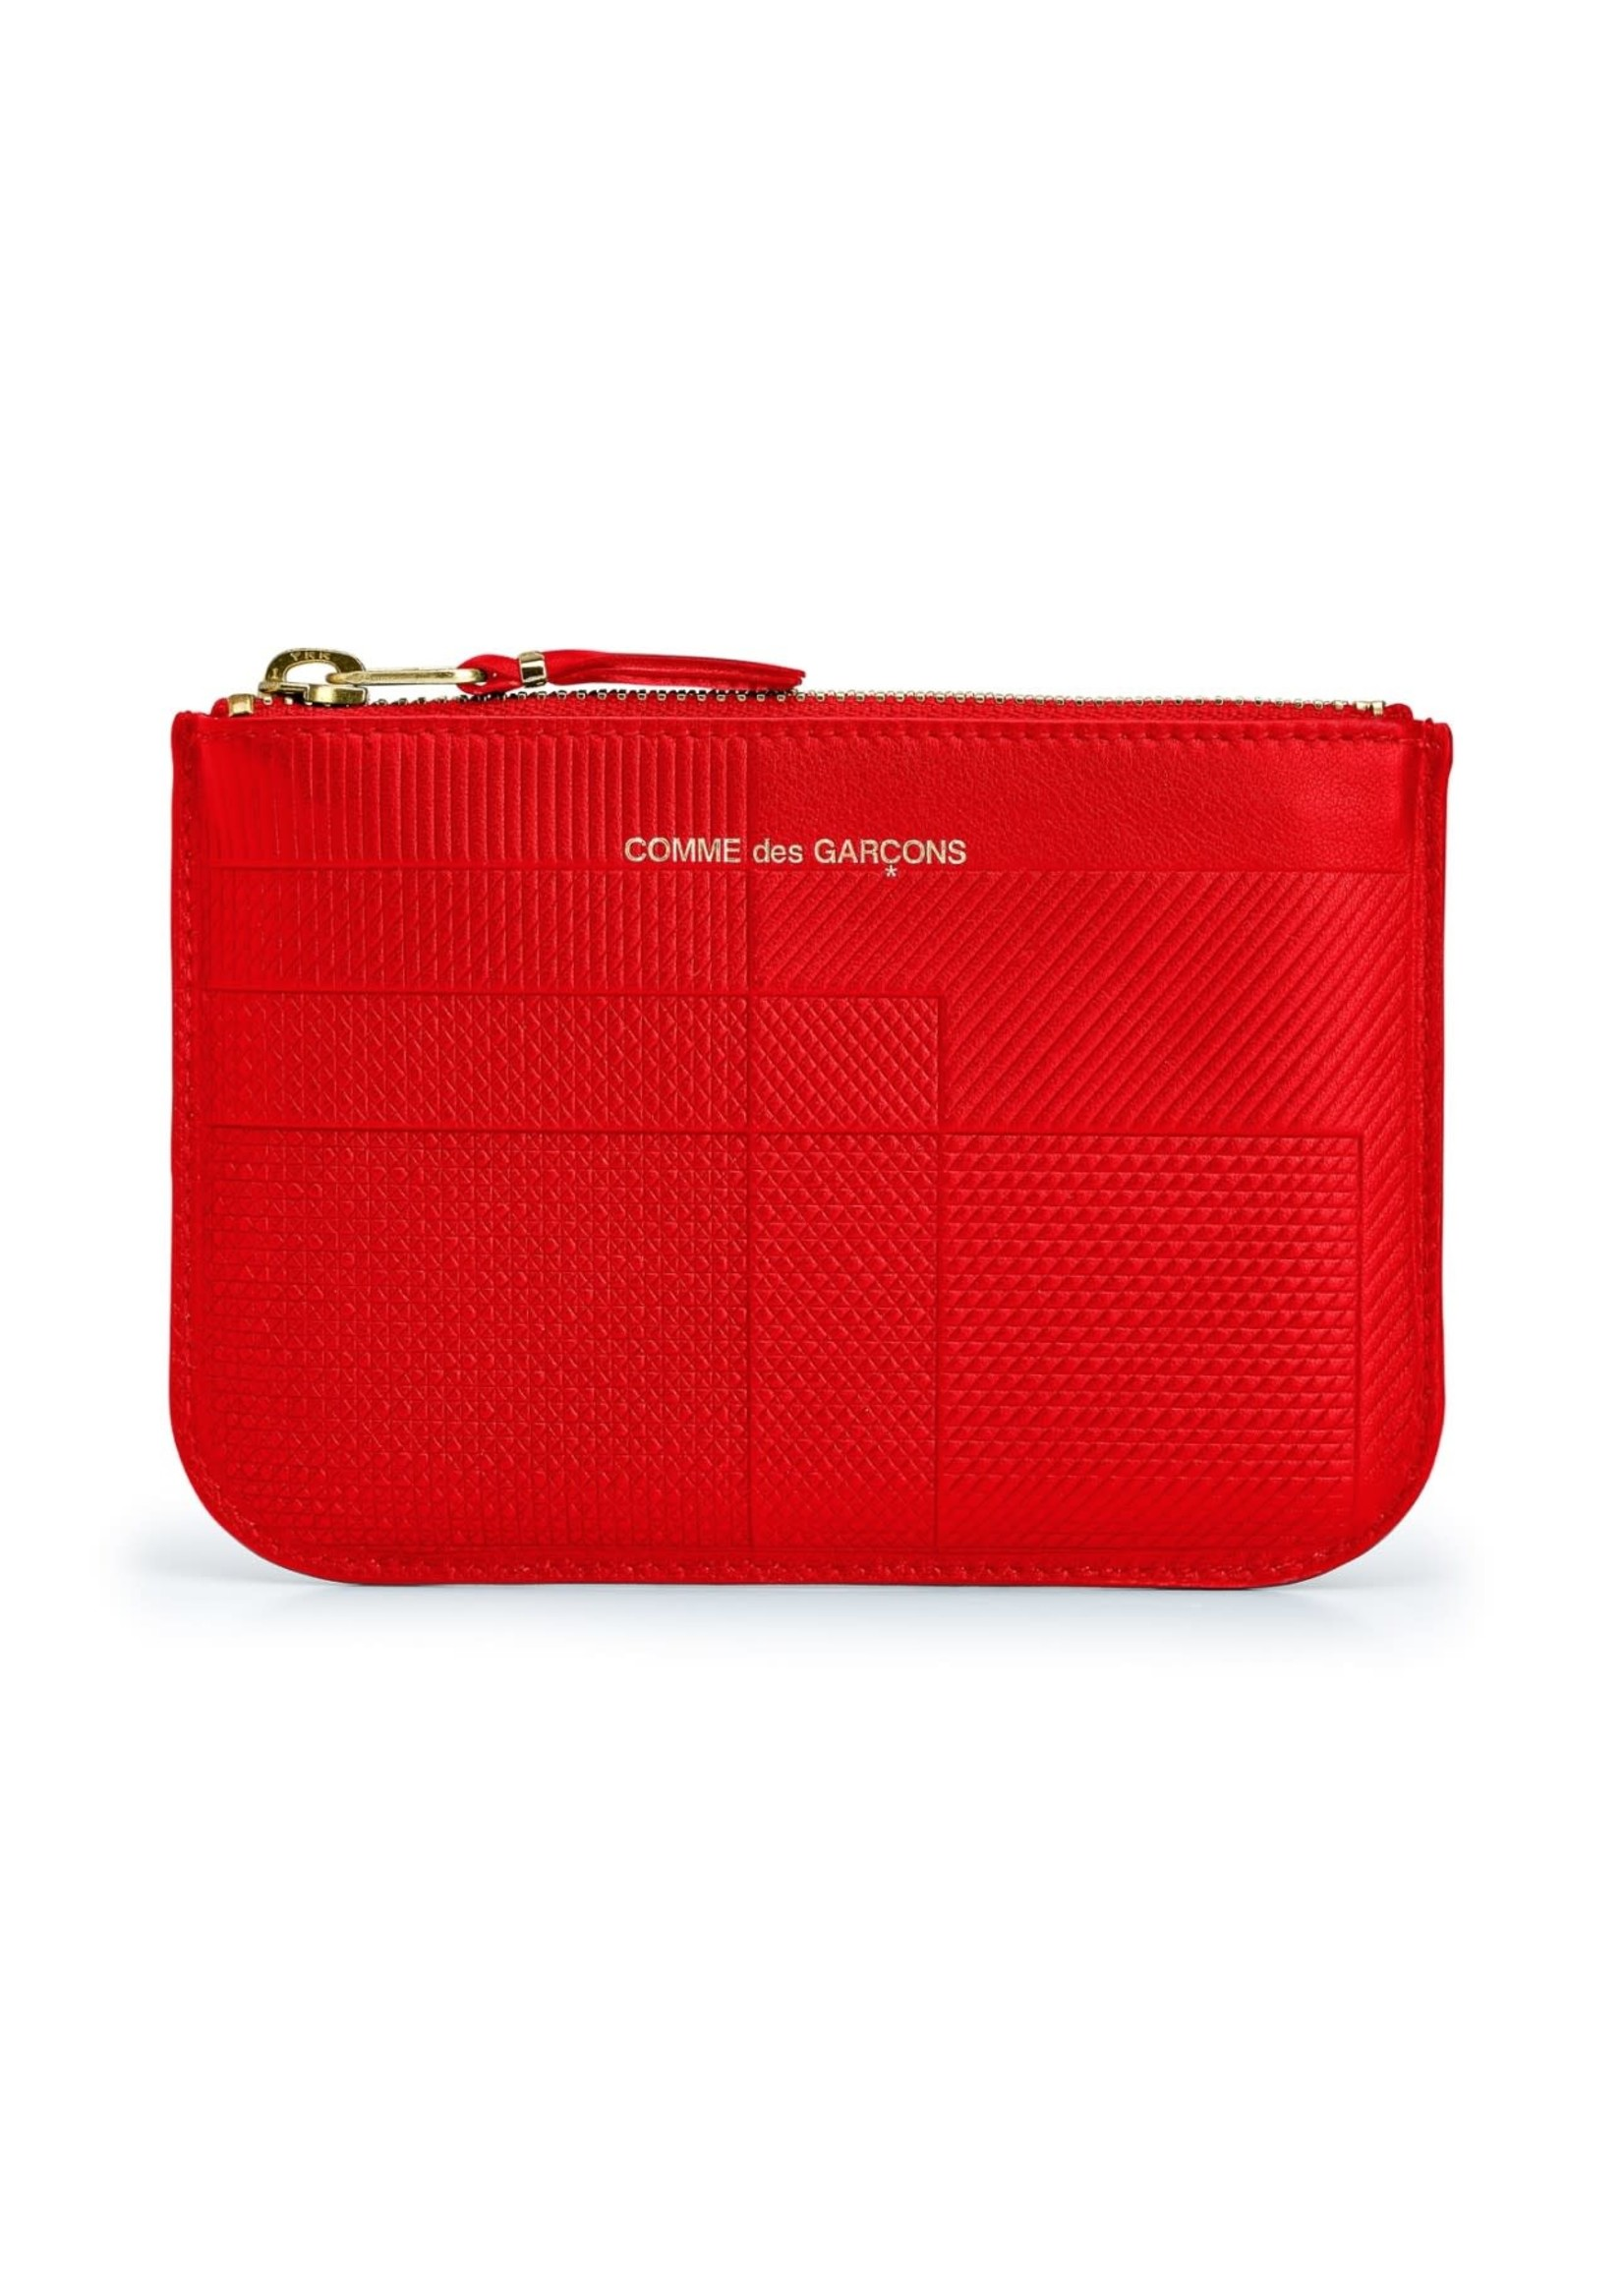 COMME des GARÇONS WALLET Intersection Lines Small Zip Pouch Red SA8100LS